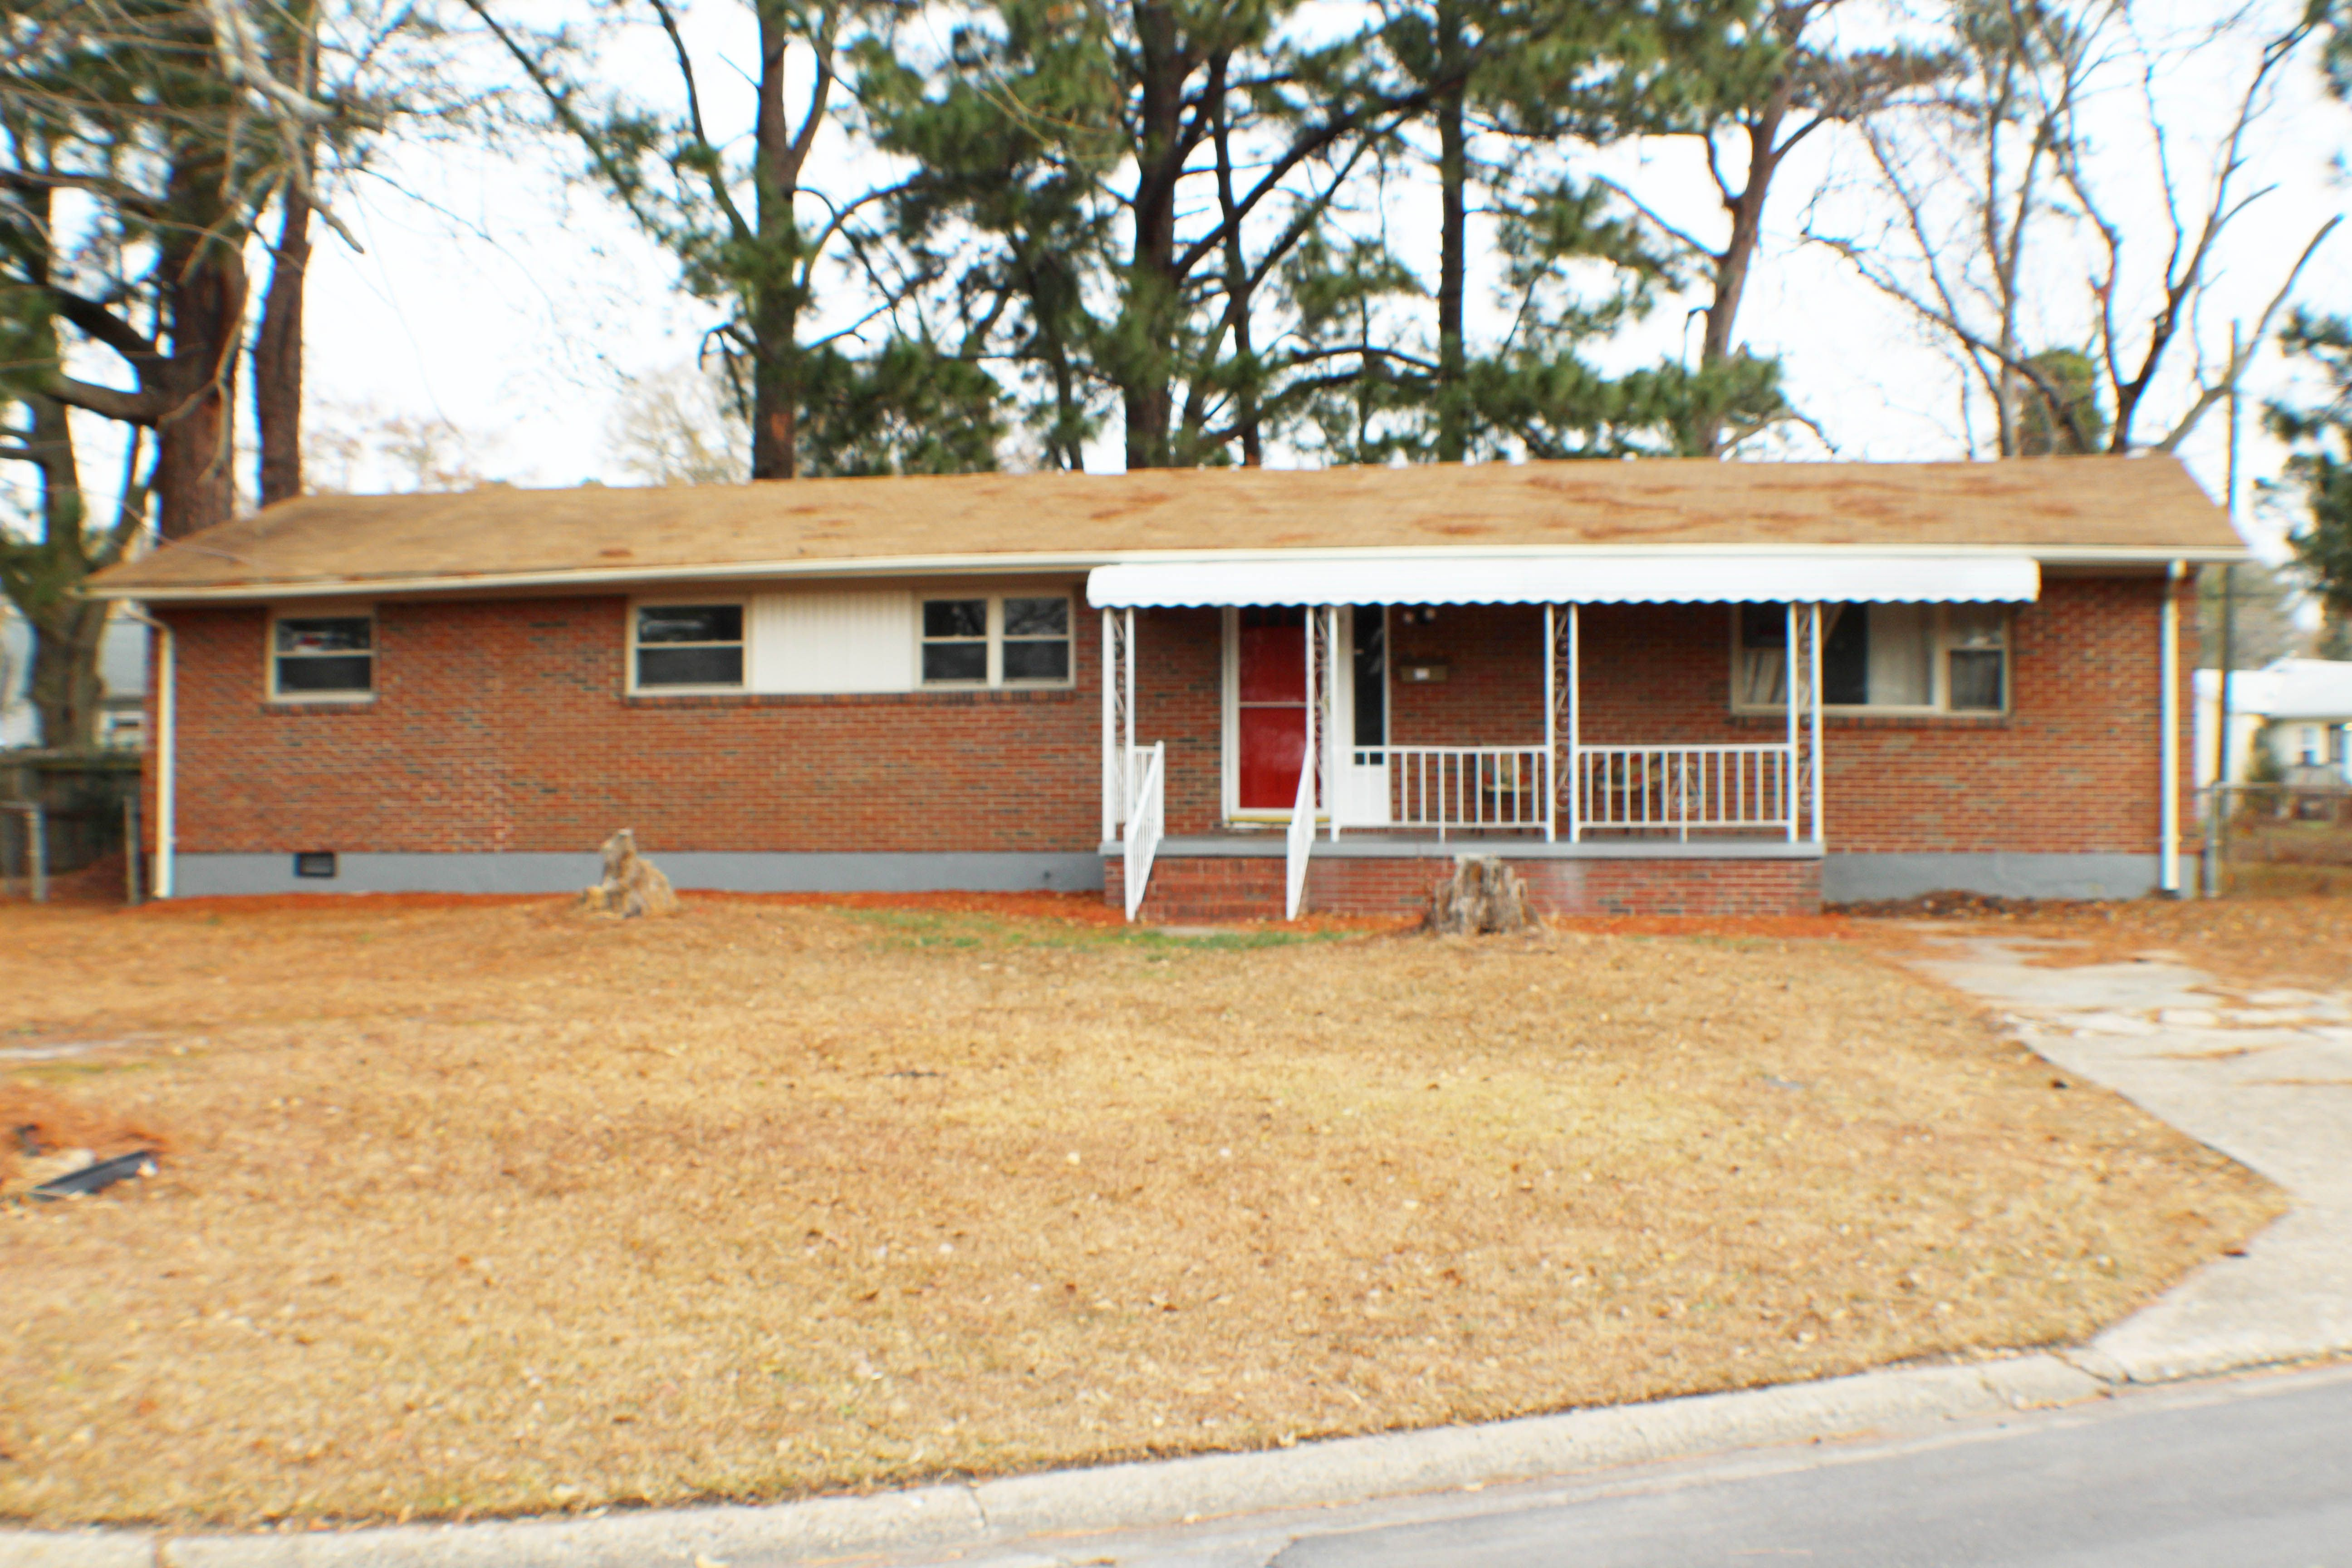 horne avenue portsmouth va listed by kingquality real estate